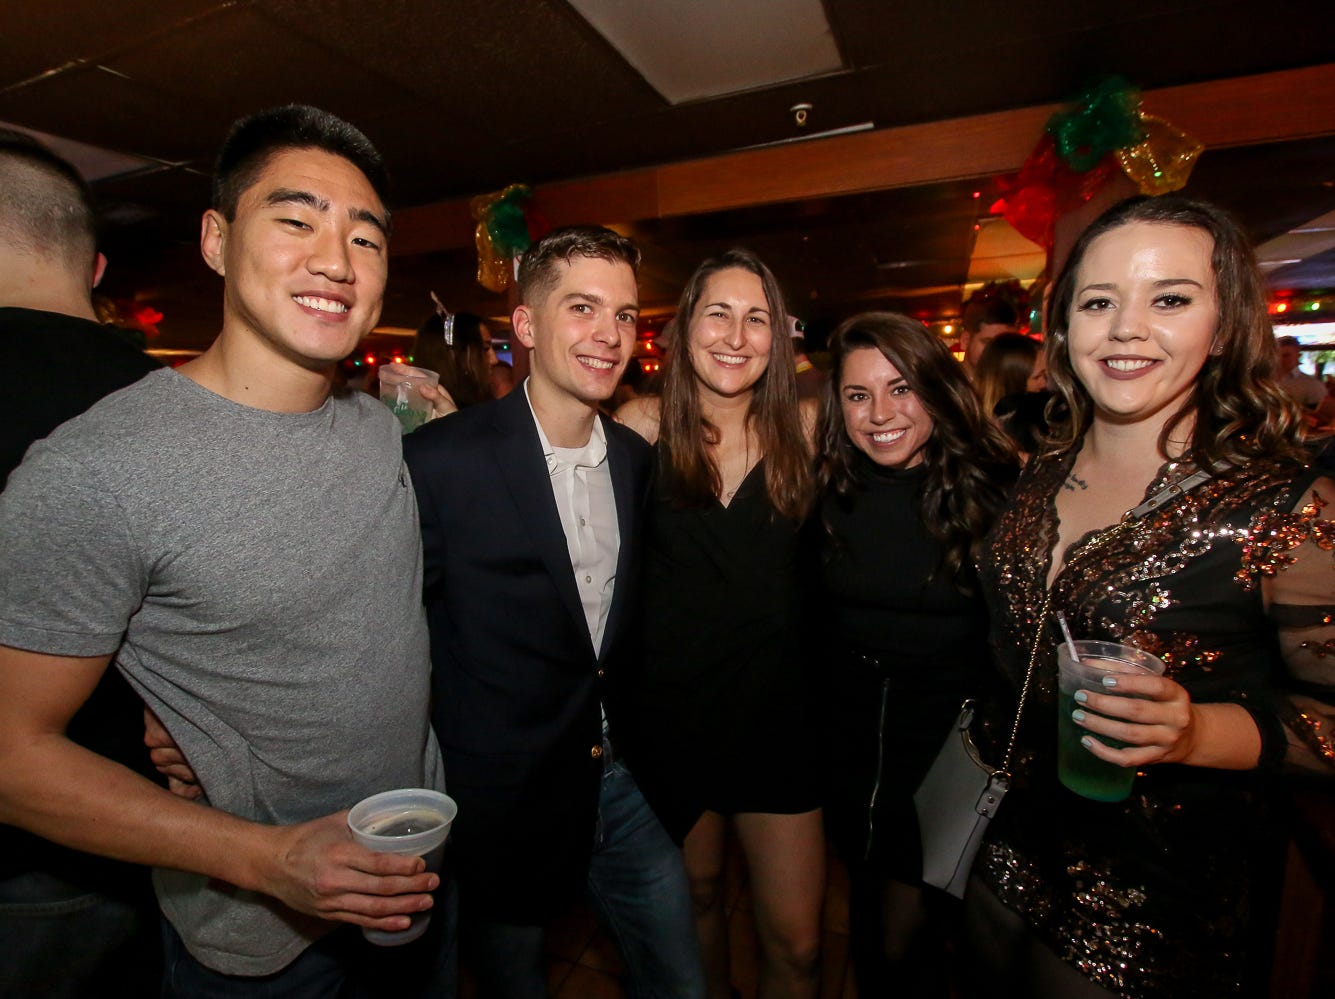 Revelers celebrate New Year's Eve at Perfect Plain Brewing Co., Old Hickory Whiskey Bar, O'Riley's Irish Pub, Seville Quarter, Intermission, and Blend Lounge on Monday, December 31, 2018.